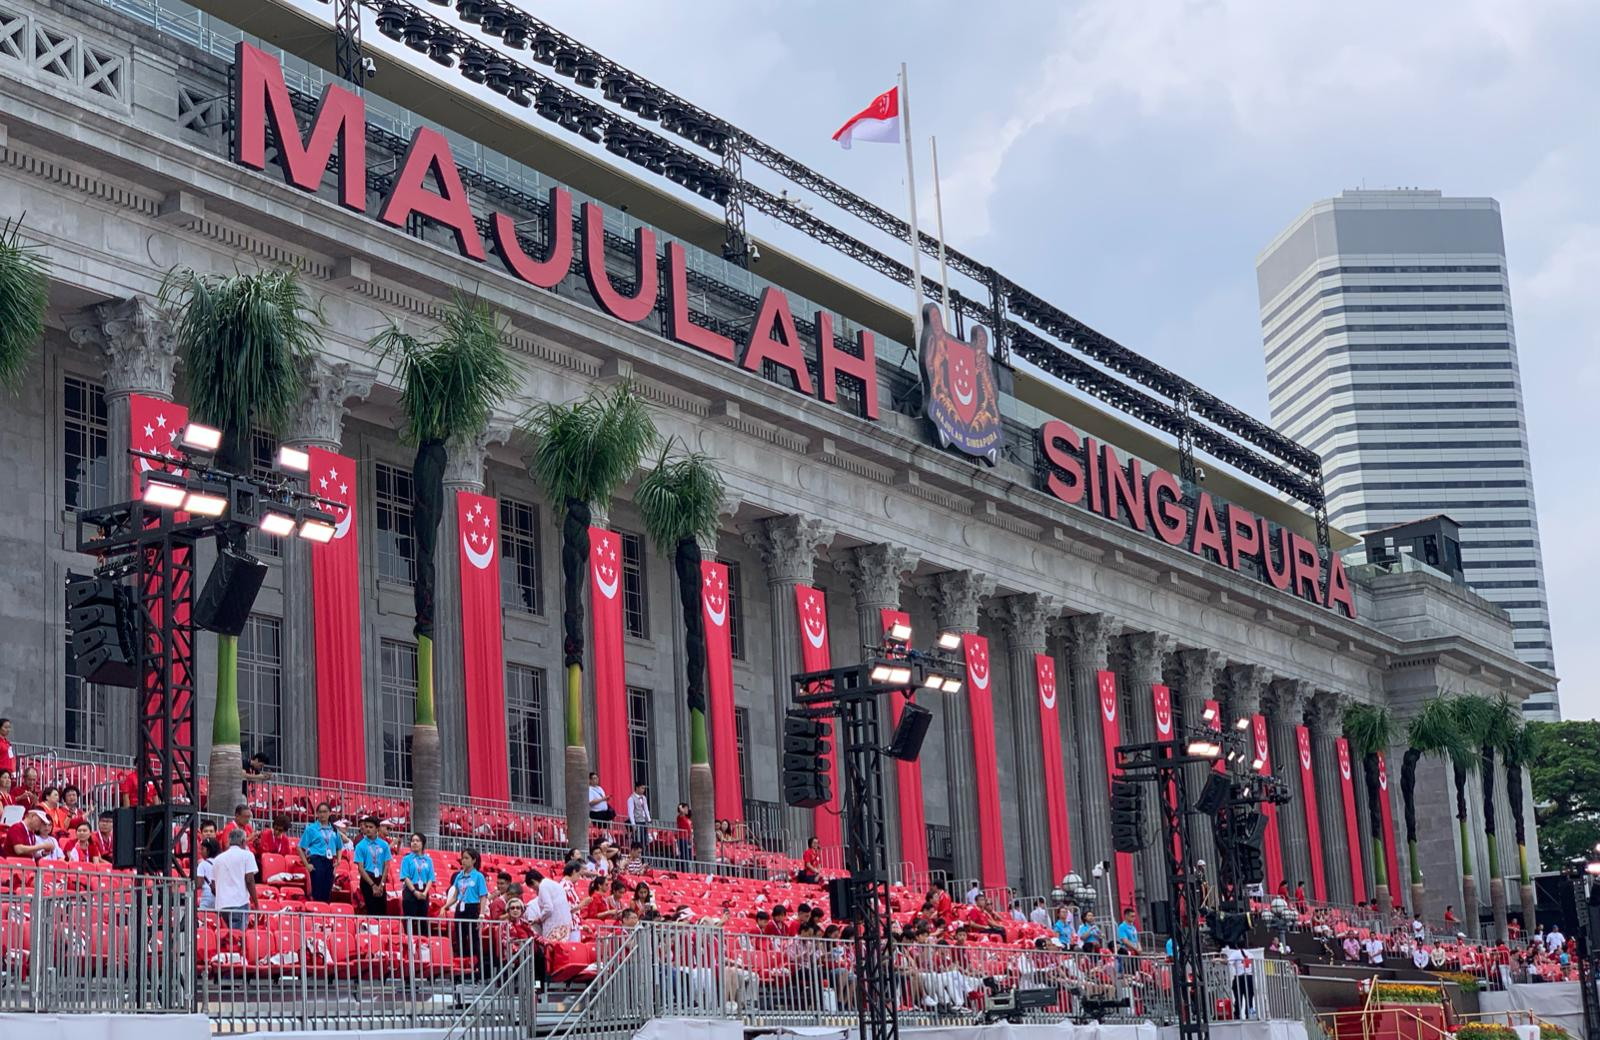 Singapore celebrates its 54th National Day. Photo courtesy: Connected to India